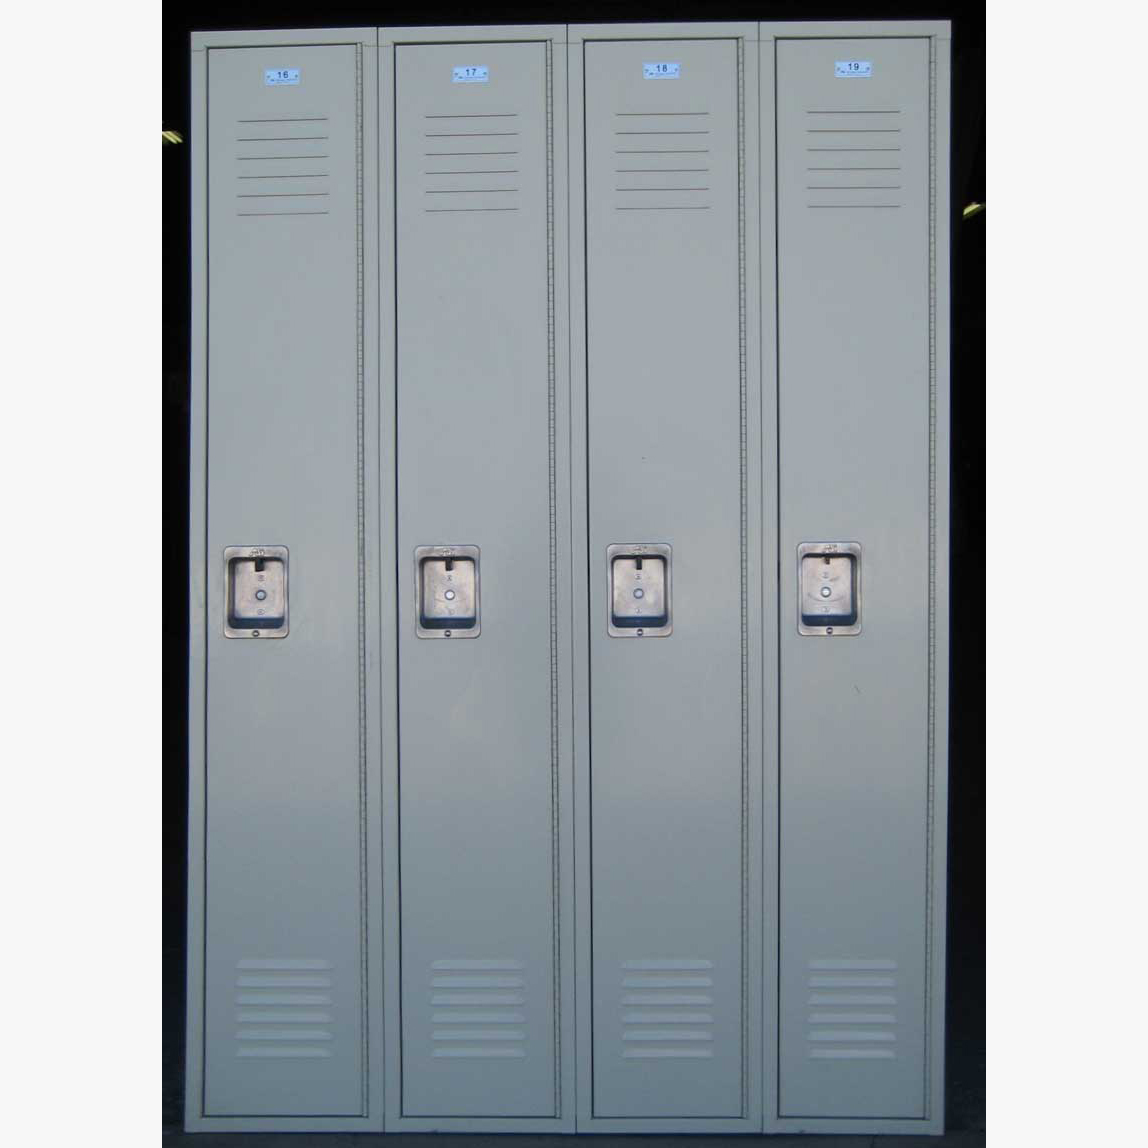 Brilliant Penco Lockers for Best Locker Choice: Penco Lockers | Penco Metal Lockers | Locker Dimensions Gym